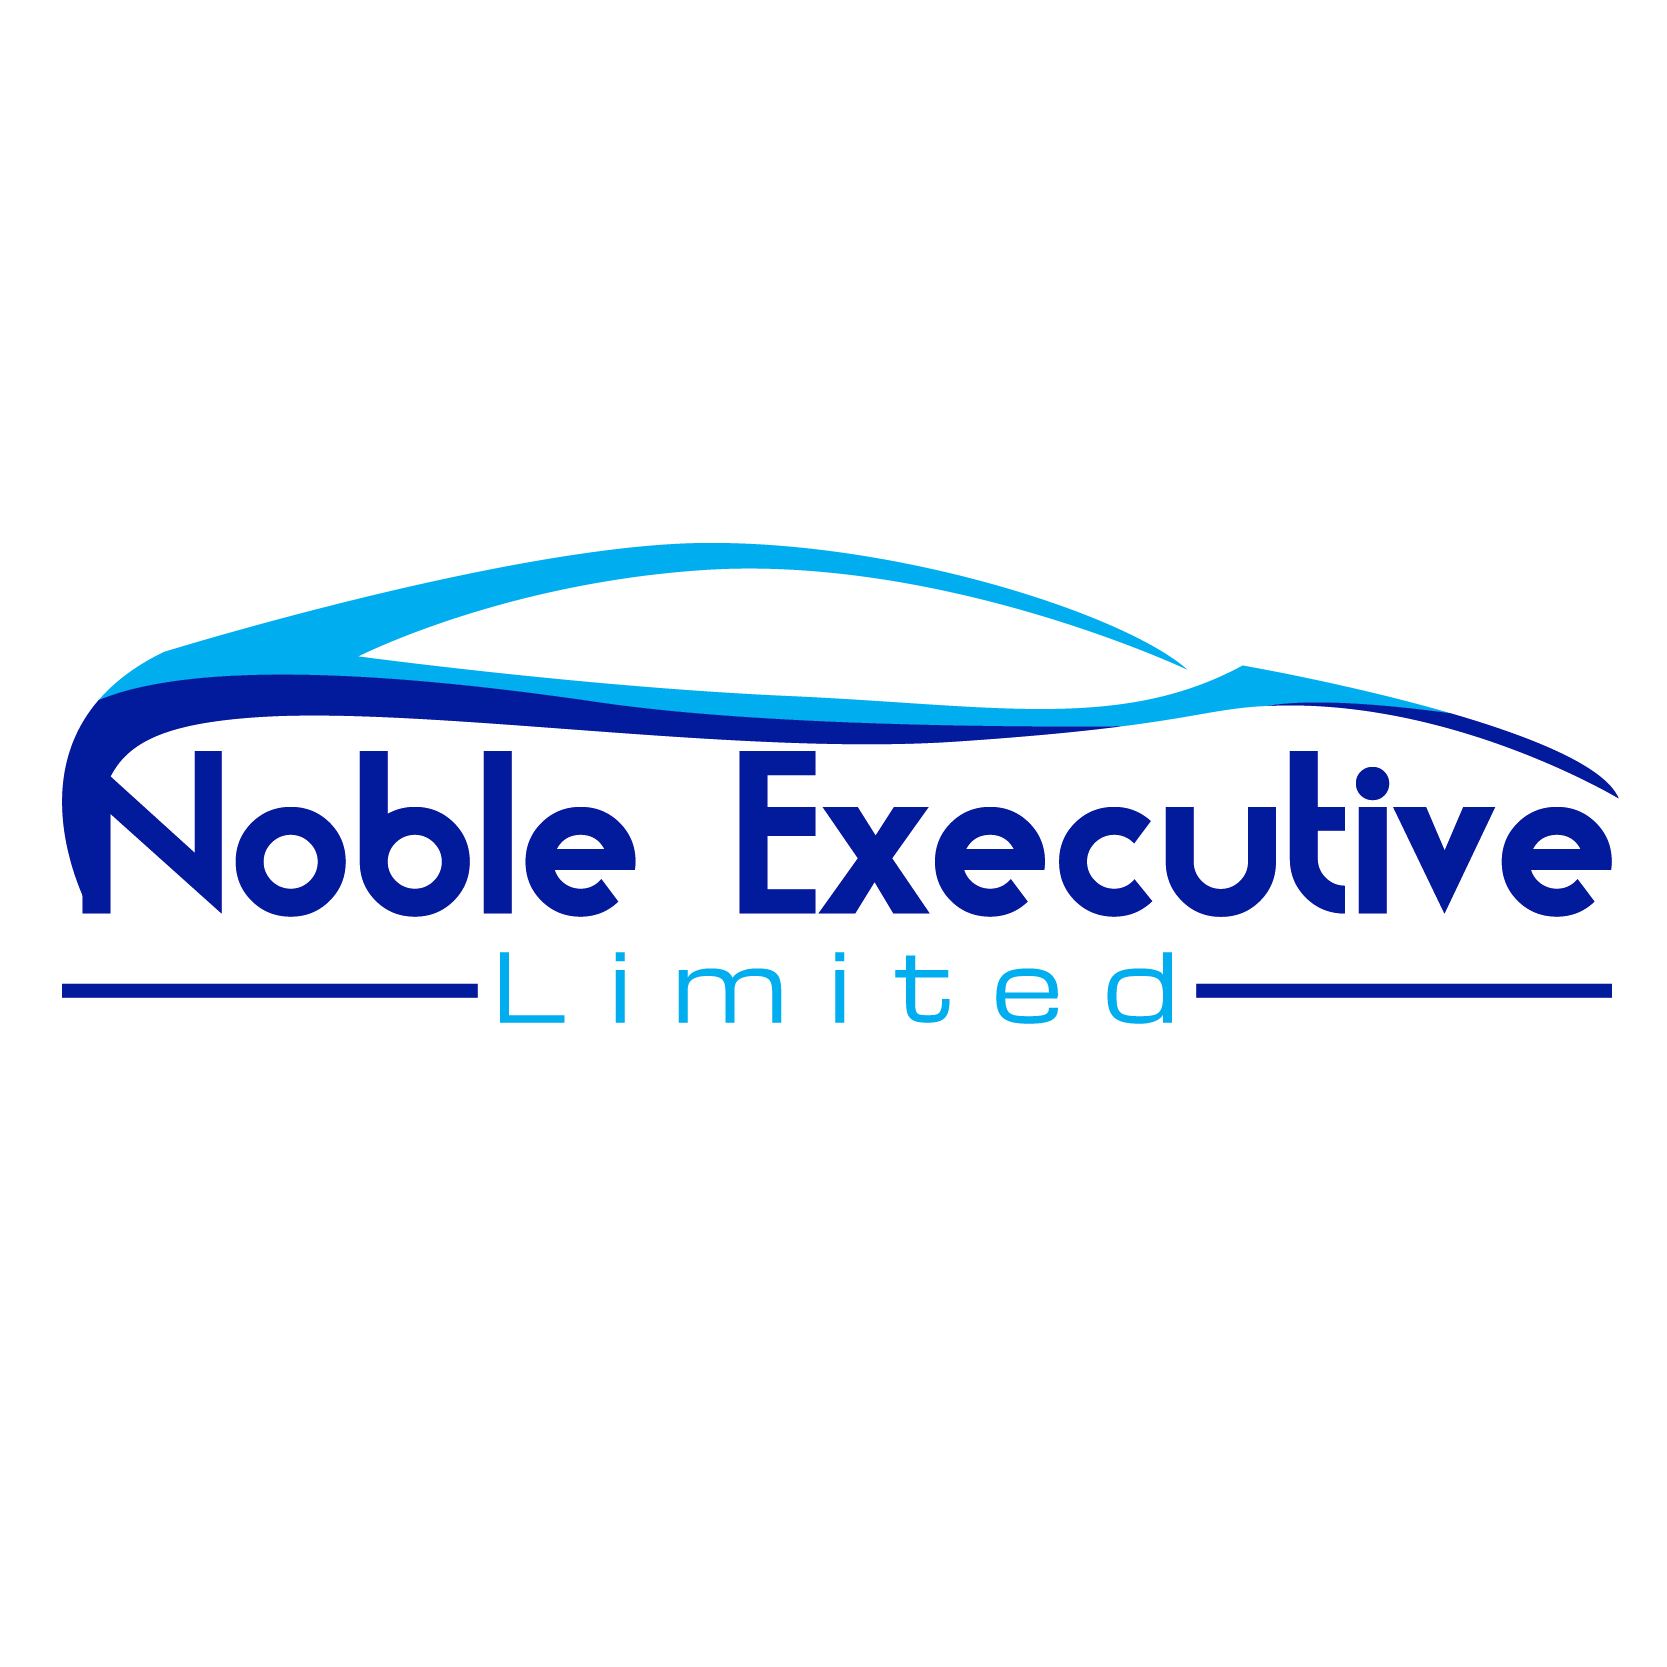 Noble Executive Limited